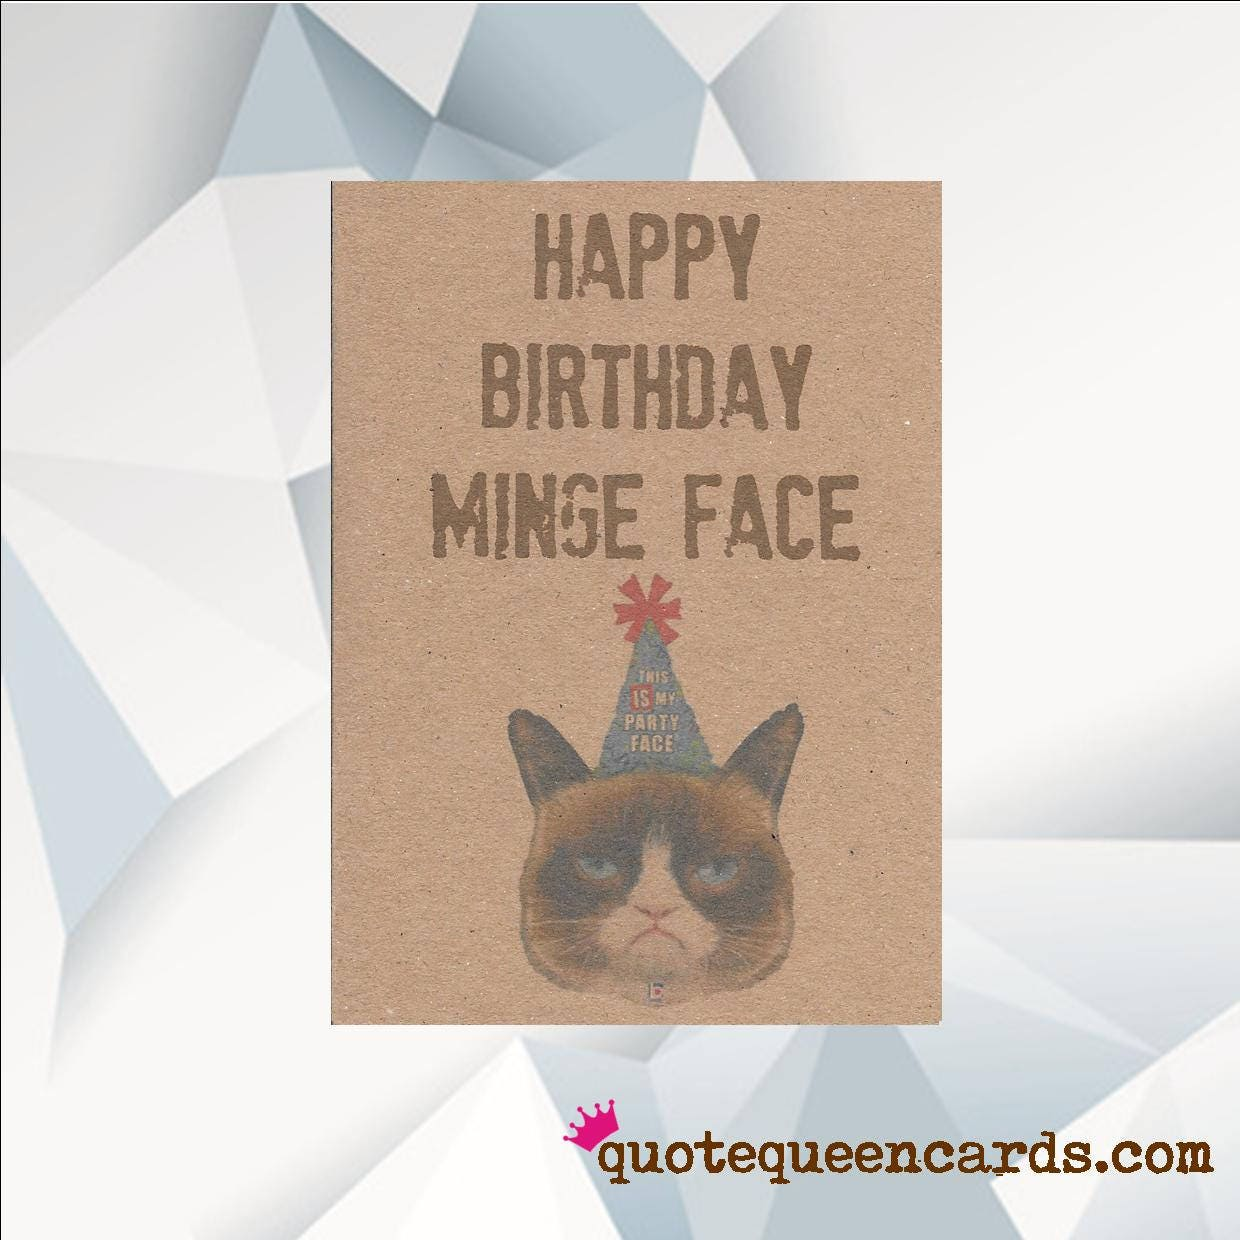 Happy Birthday Minge Face GRUMPY CAT Funny Card Humourous Card21st 30th Birthdaybirthday